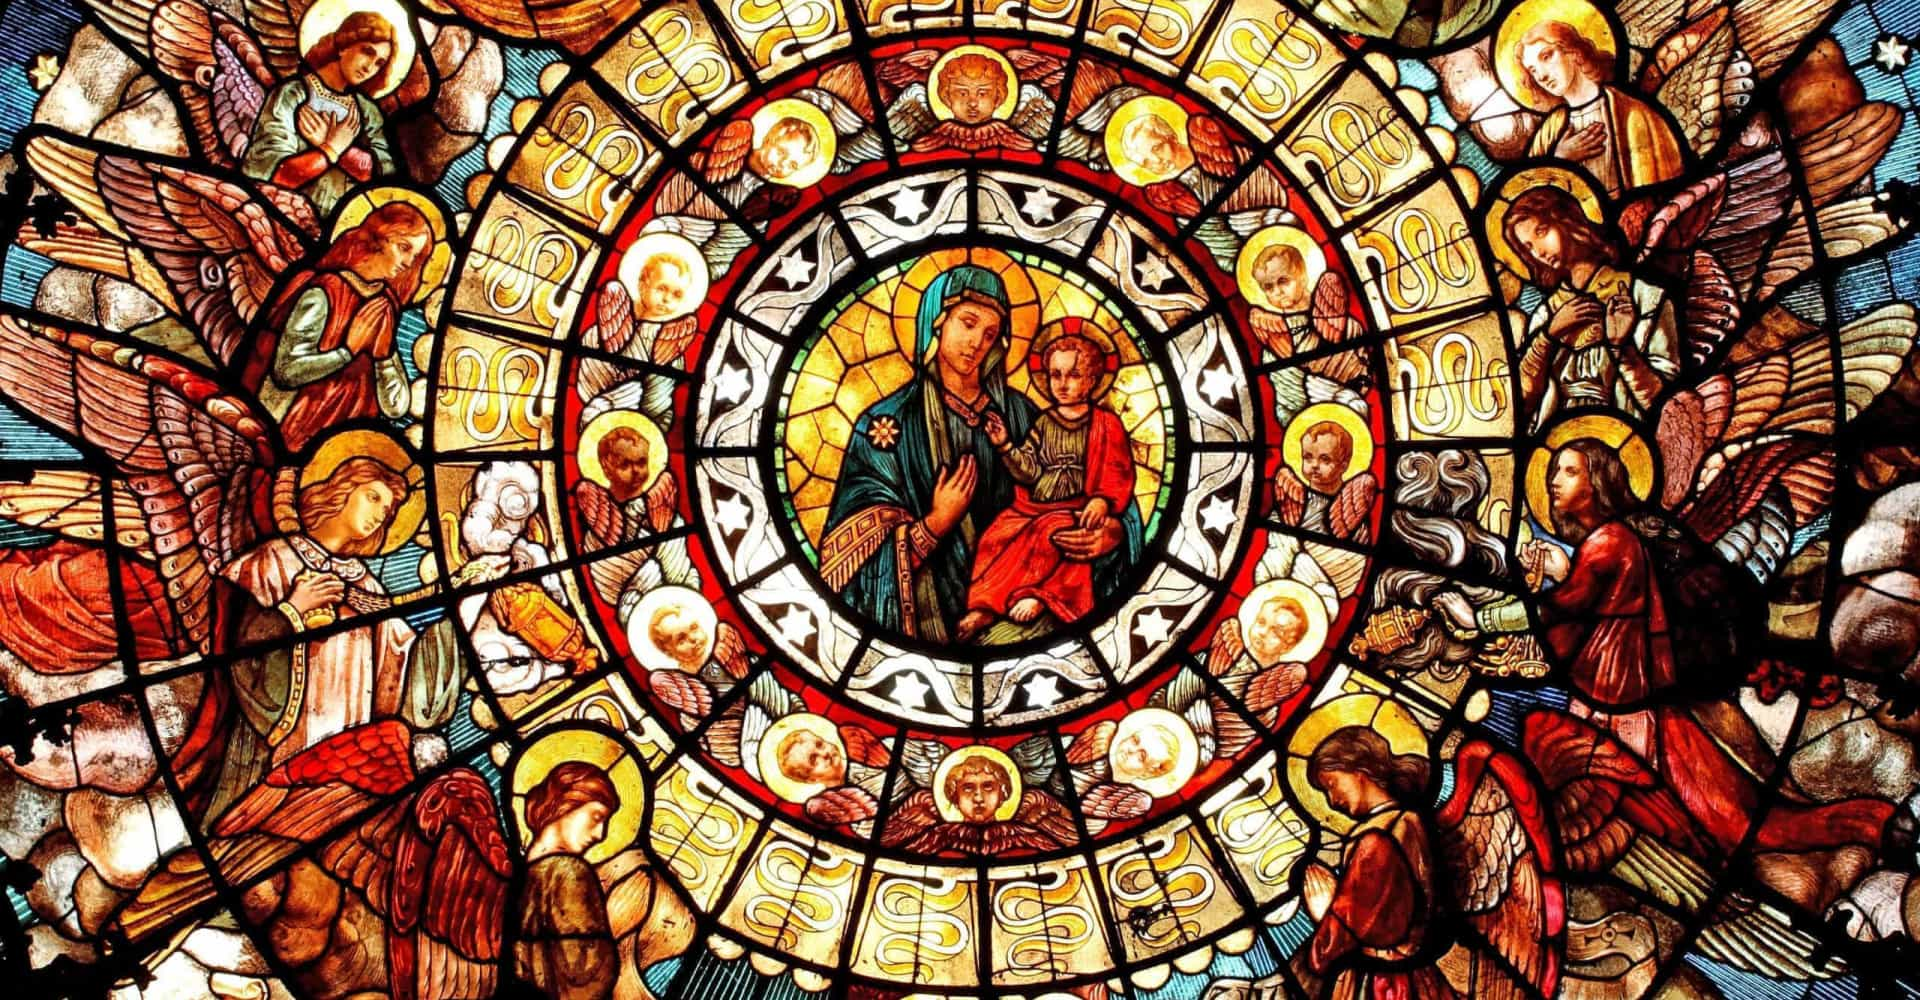 Admire the world's most beautiful stained glass artwork